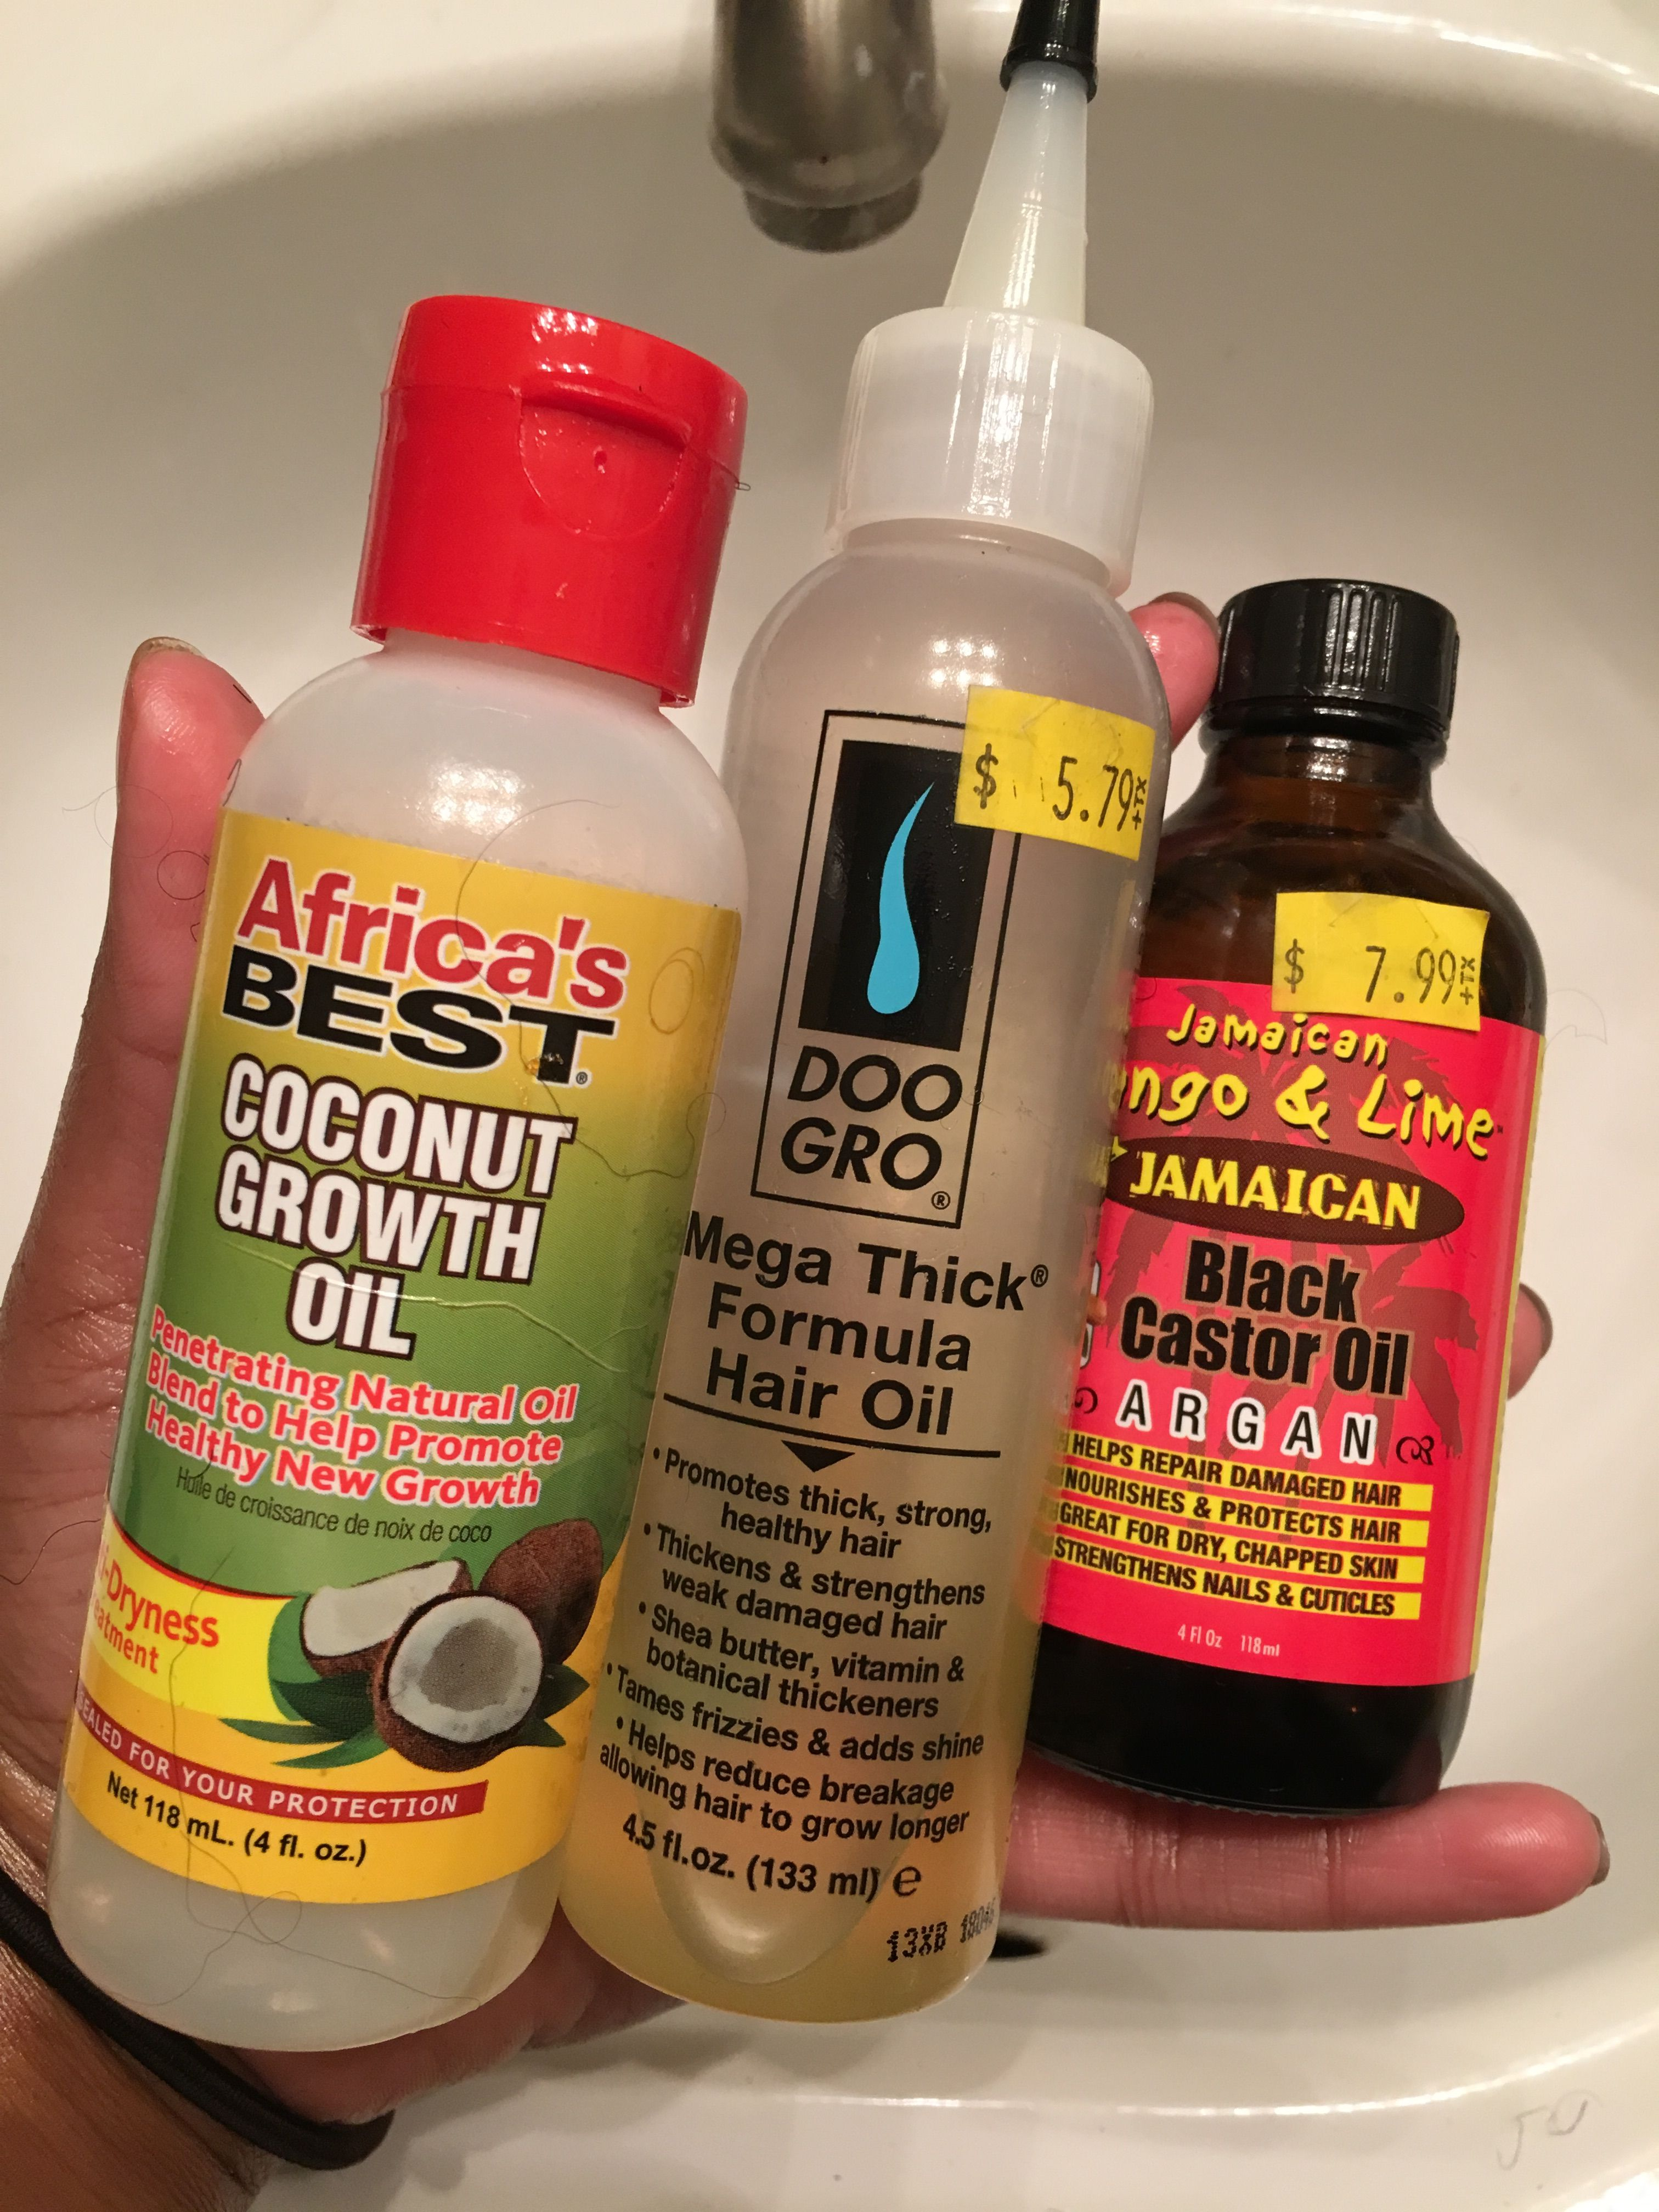 This is my current hair growth/strength mixture. I put all three )equal parts) in a small bottle and oil my scalp every other day throughout my protective styling.